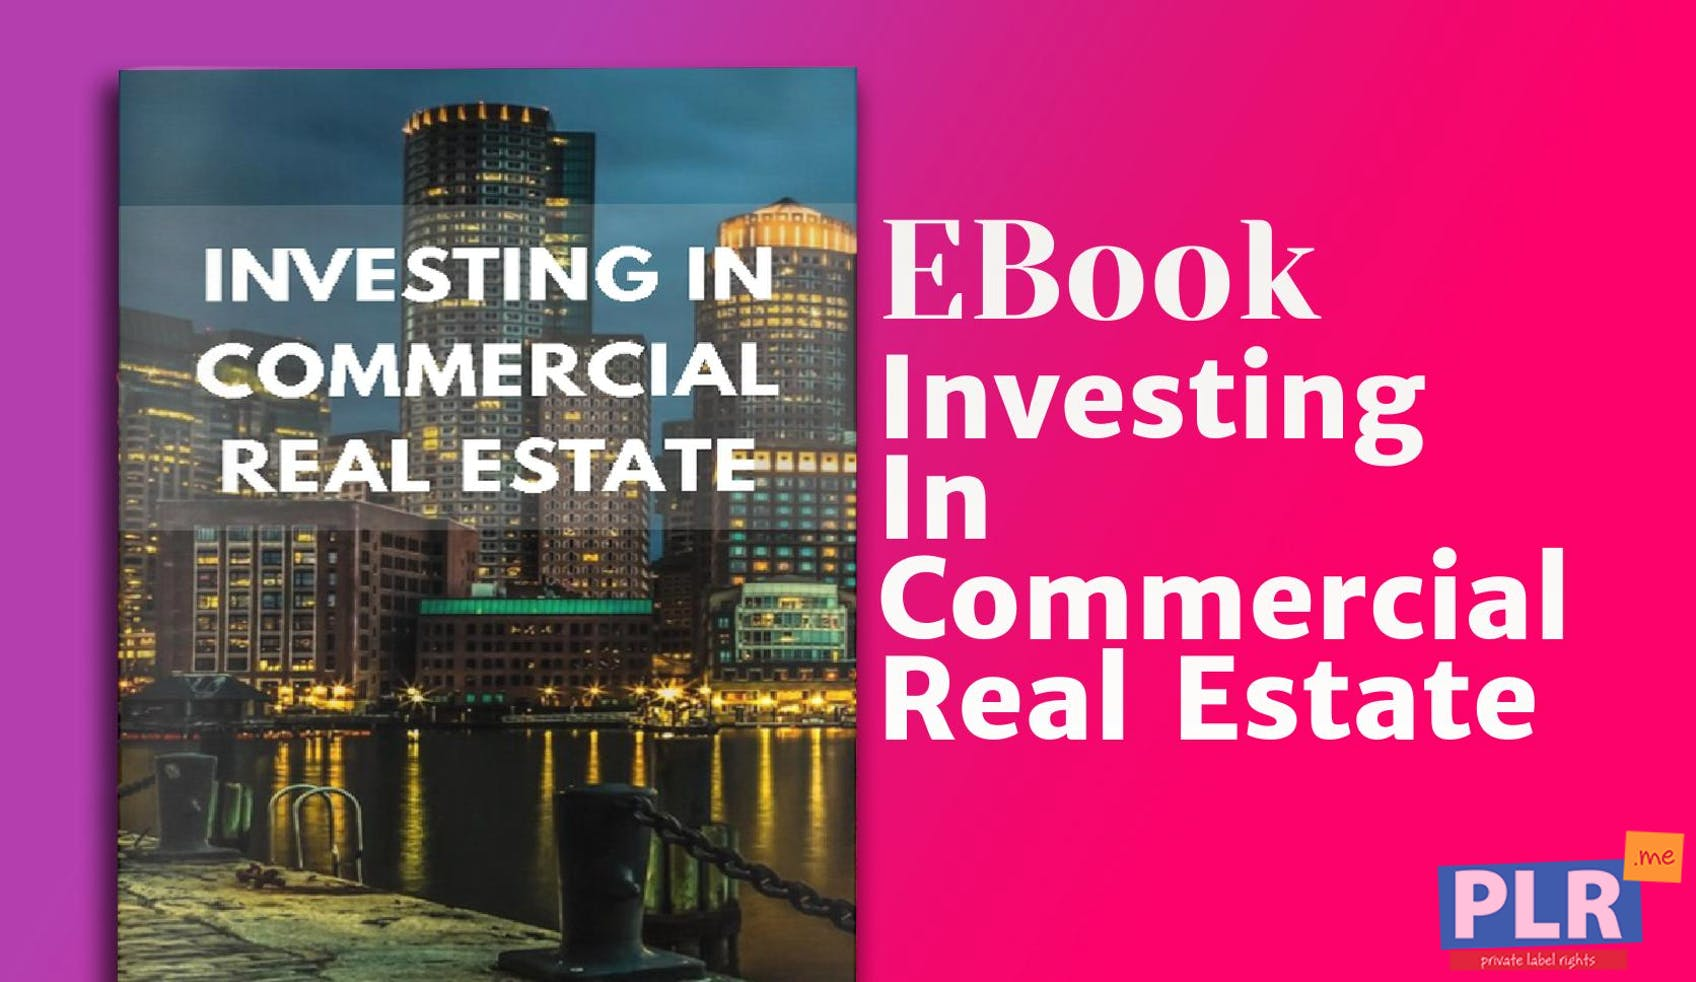 Plr Reports Ebooks Investing In Commercial Real Estate Plr Me